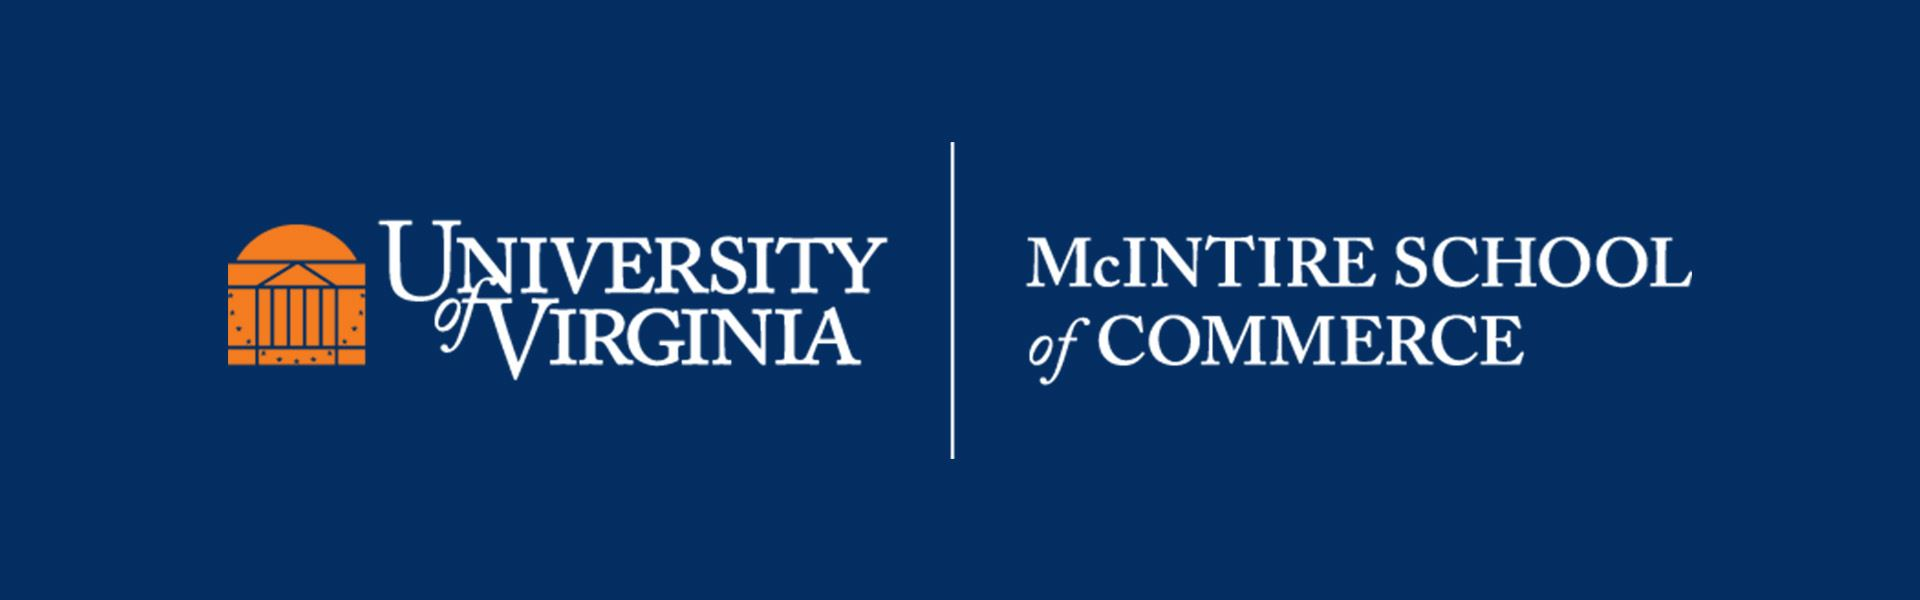 UVA McIntire School of Commerce Logo